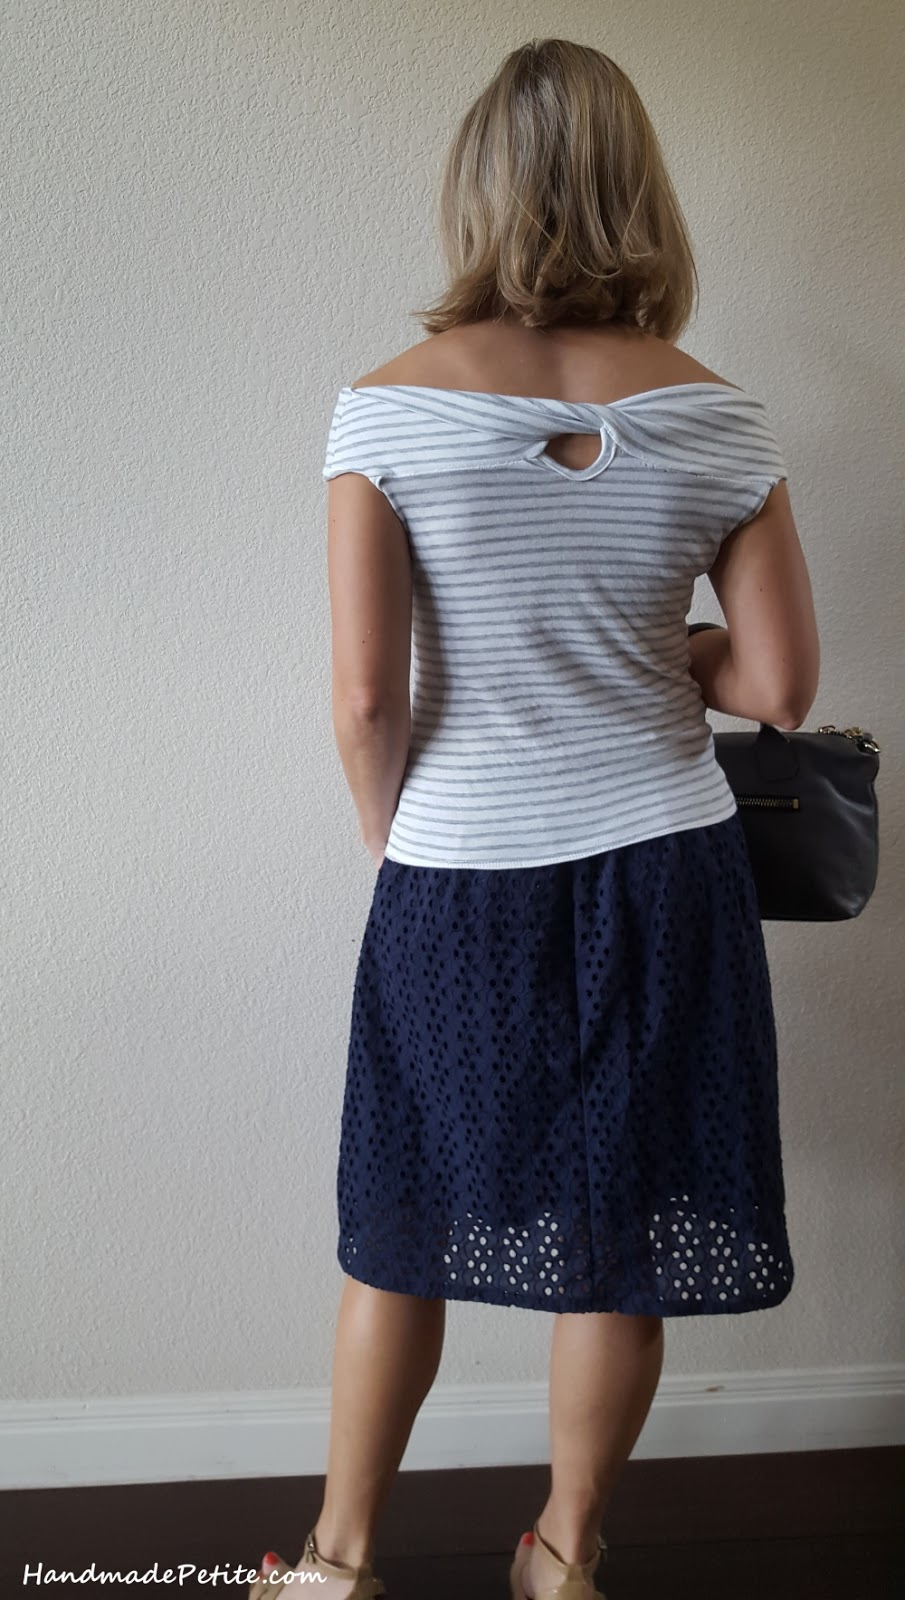 Handmade outfit - knit striped twist top and eyelet knee skirt back view